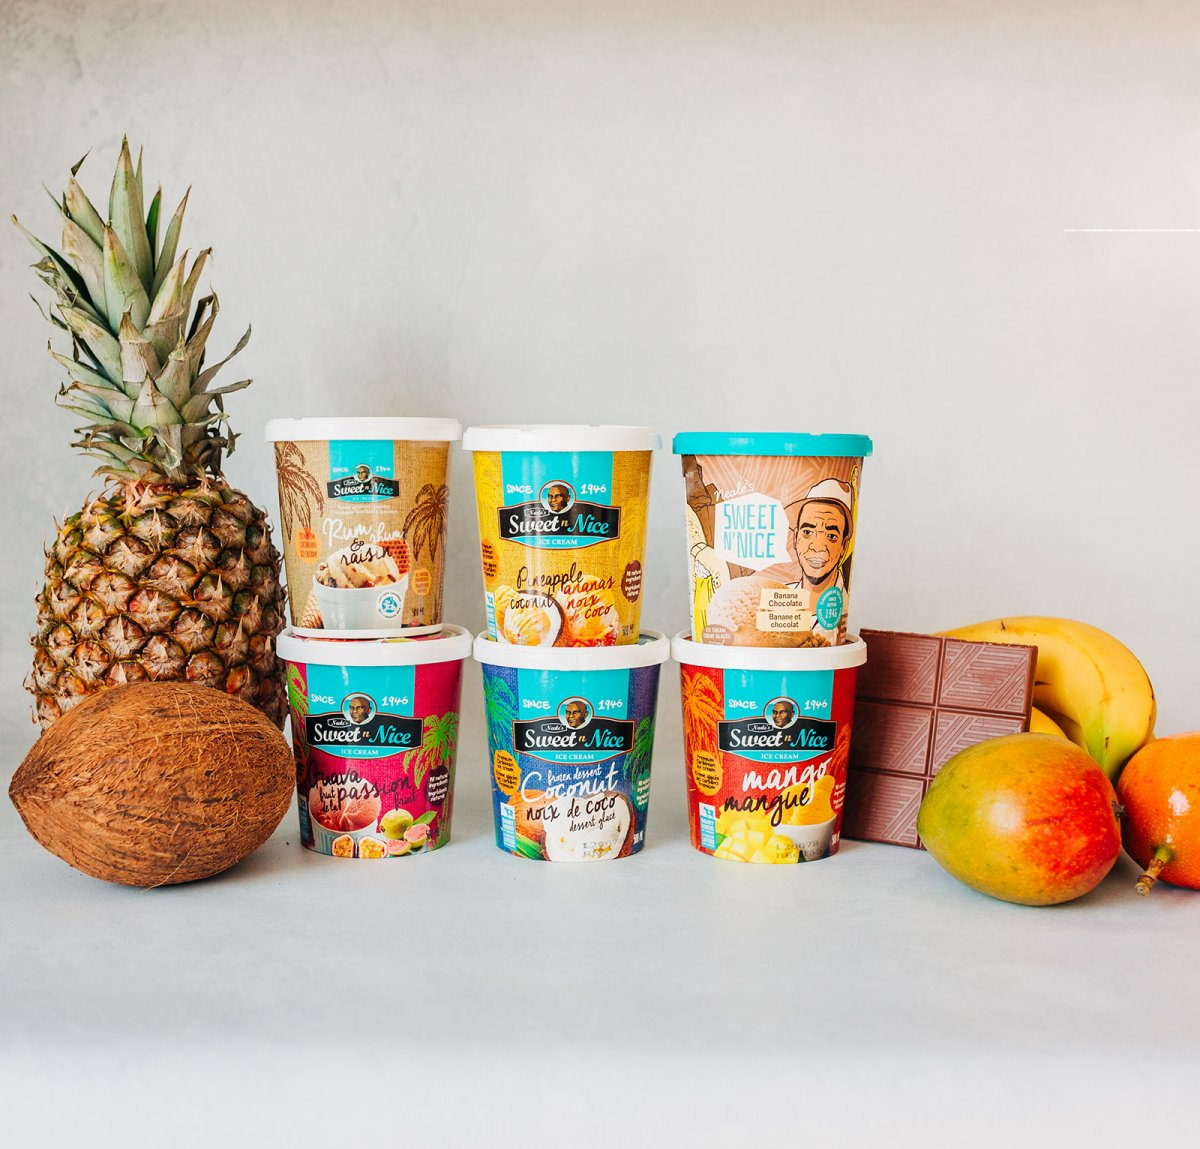 Six Neale's Sweet N' nice ice cream cartons surrounded by a pineapple, a coconut, chocolate, and mangos